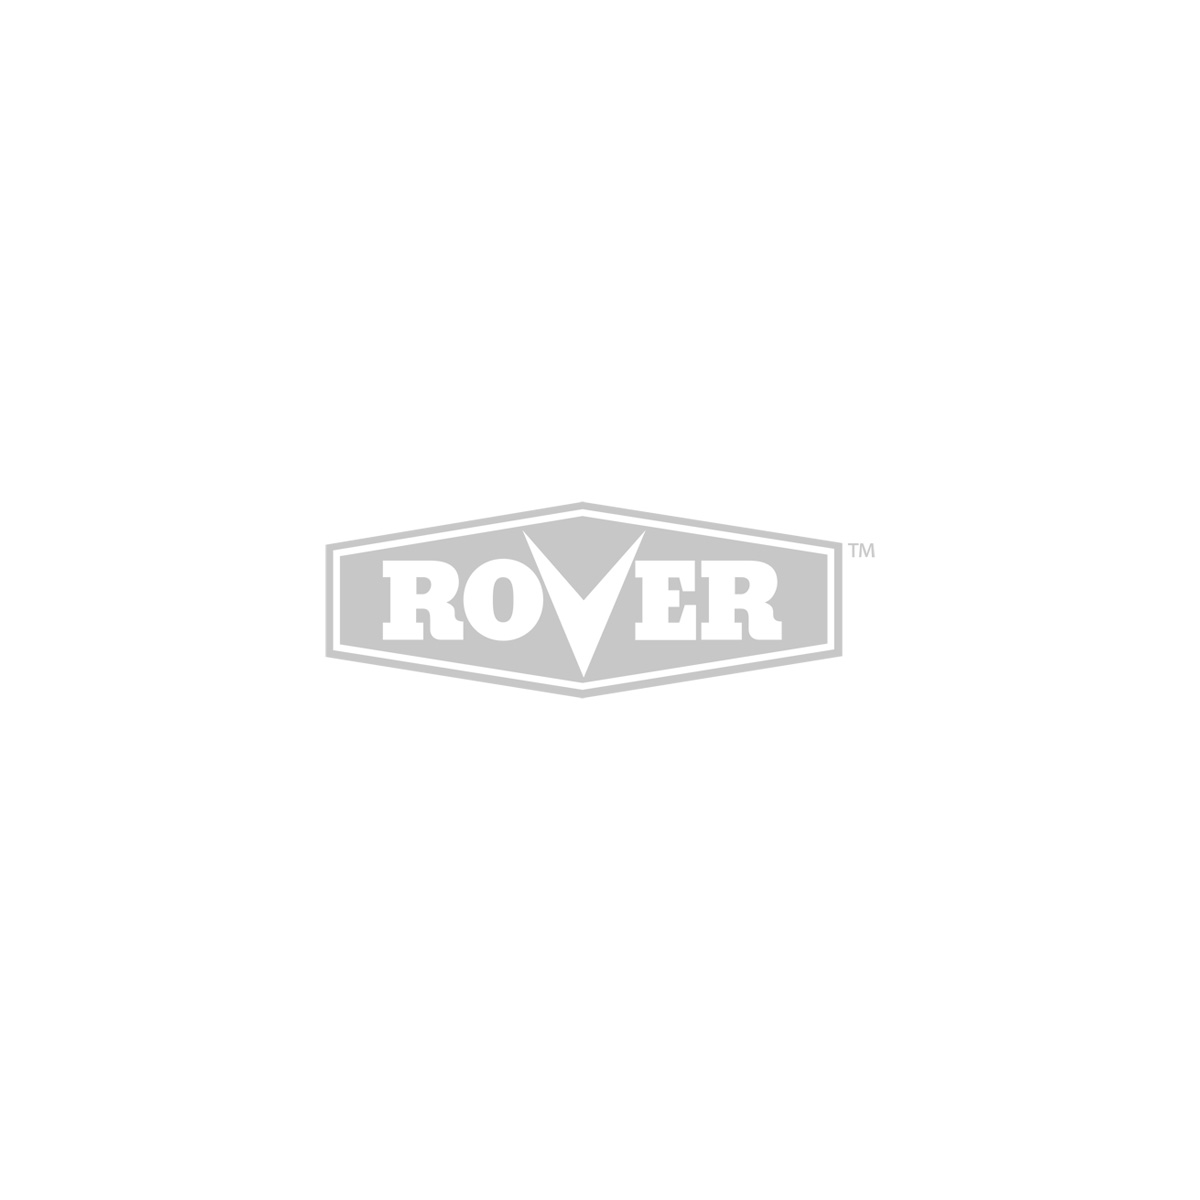 Advanced Lithium Ion Battery Power, far superior to Lead Acid Battery Competitors